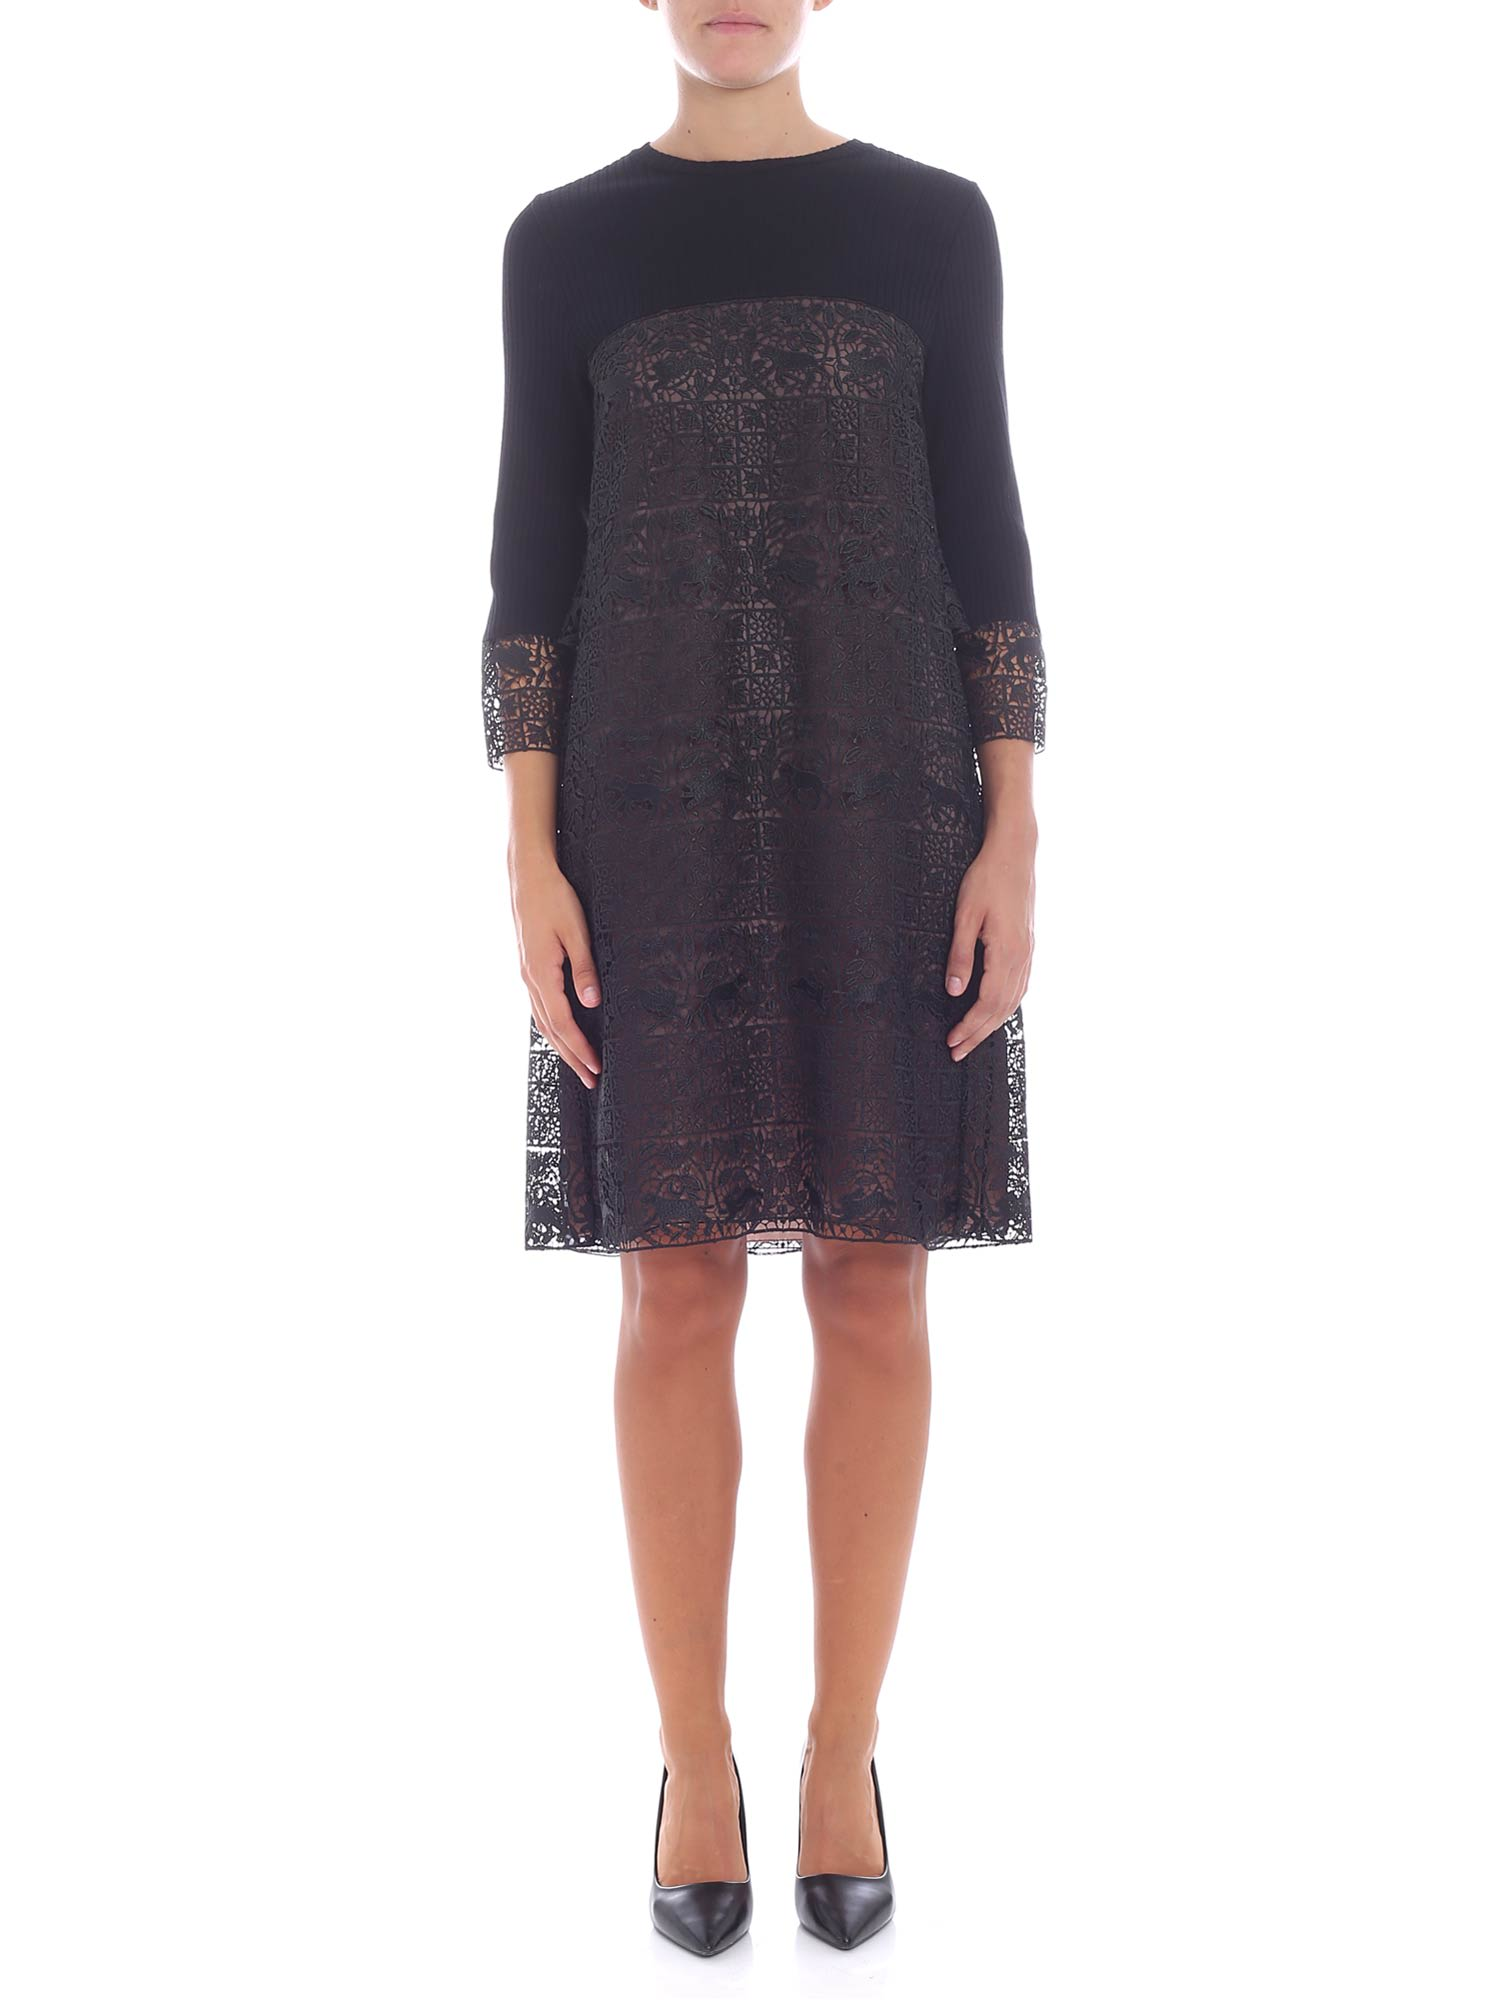 Alberta Ferretti Wool And Lace Dress